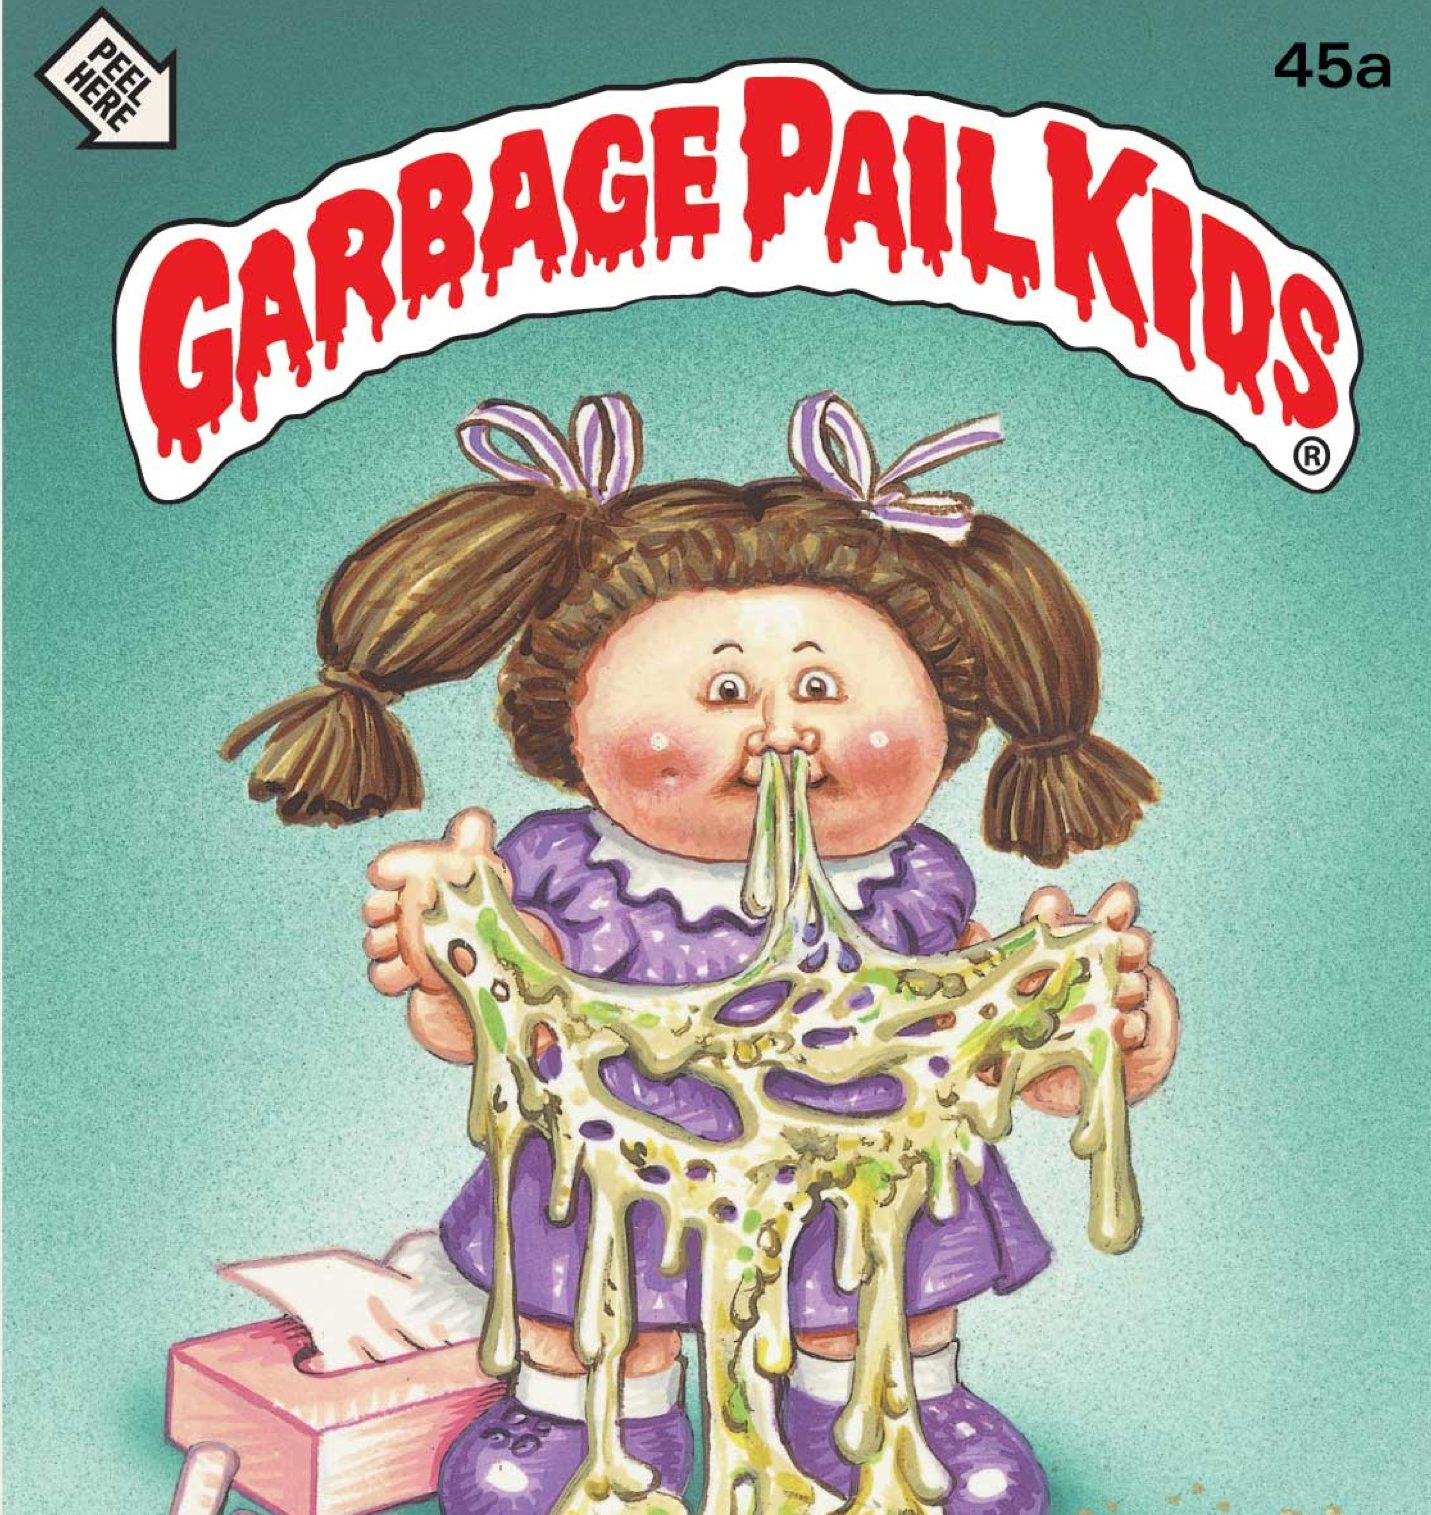 Garbage Pail Kids page 57 1 e1599476687501 20 Popular TV Shows That Were Cancelled Due To Controversy